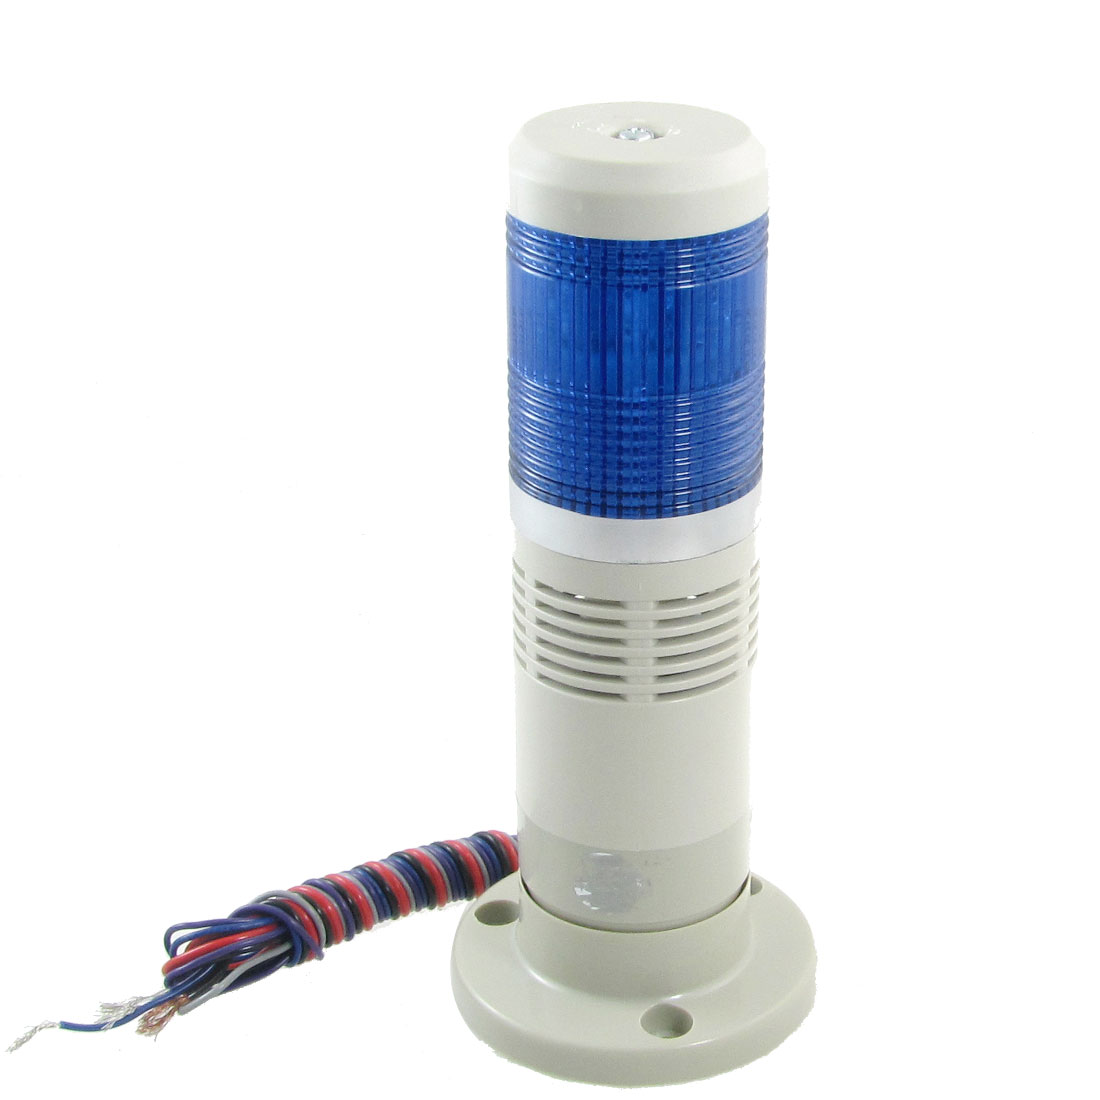 24V AC/DC Blue LED Industrial Signal Tower Light Warning Lamp Flash with Buzzer